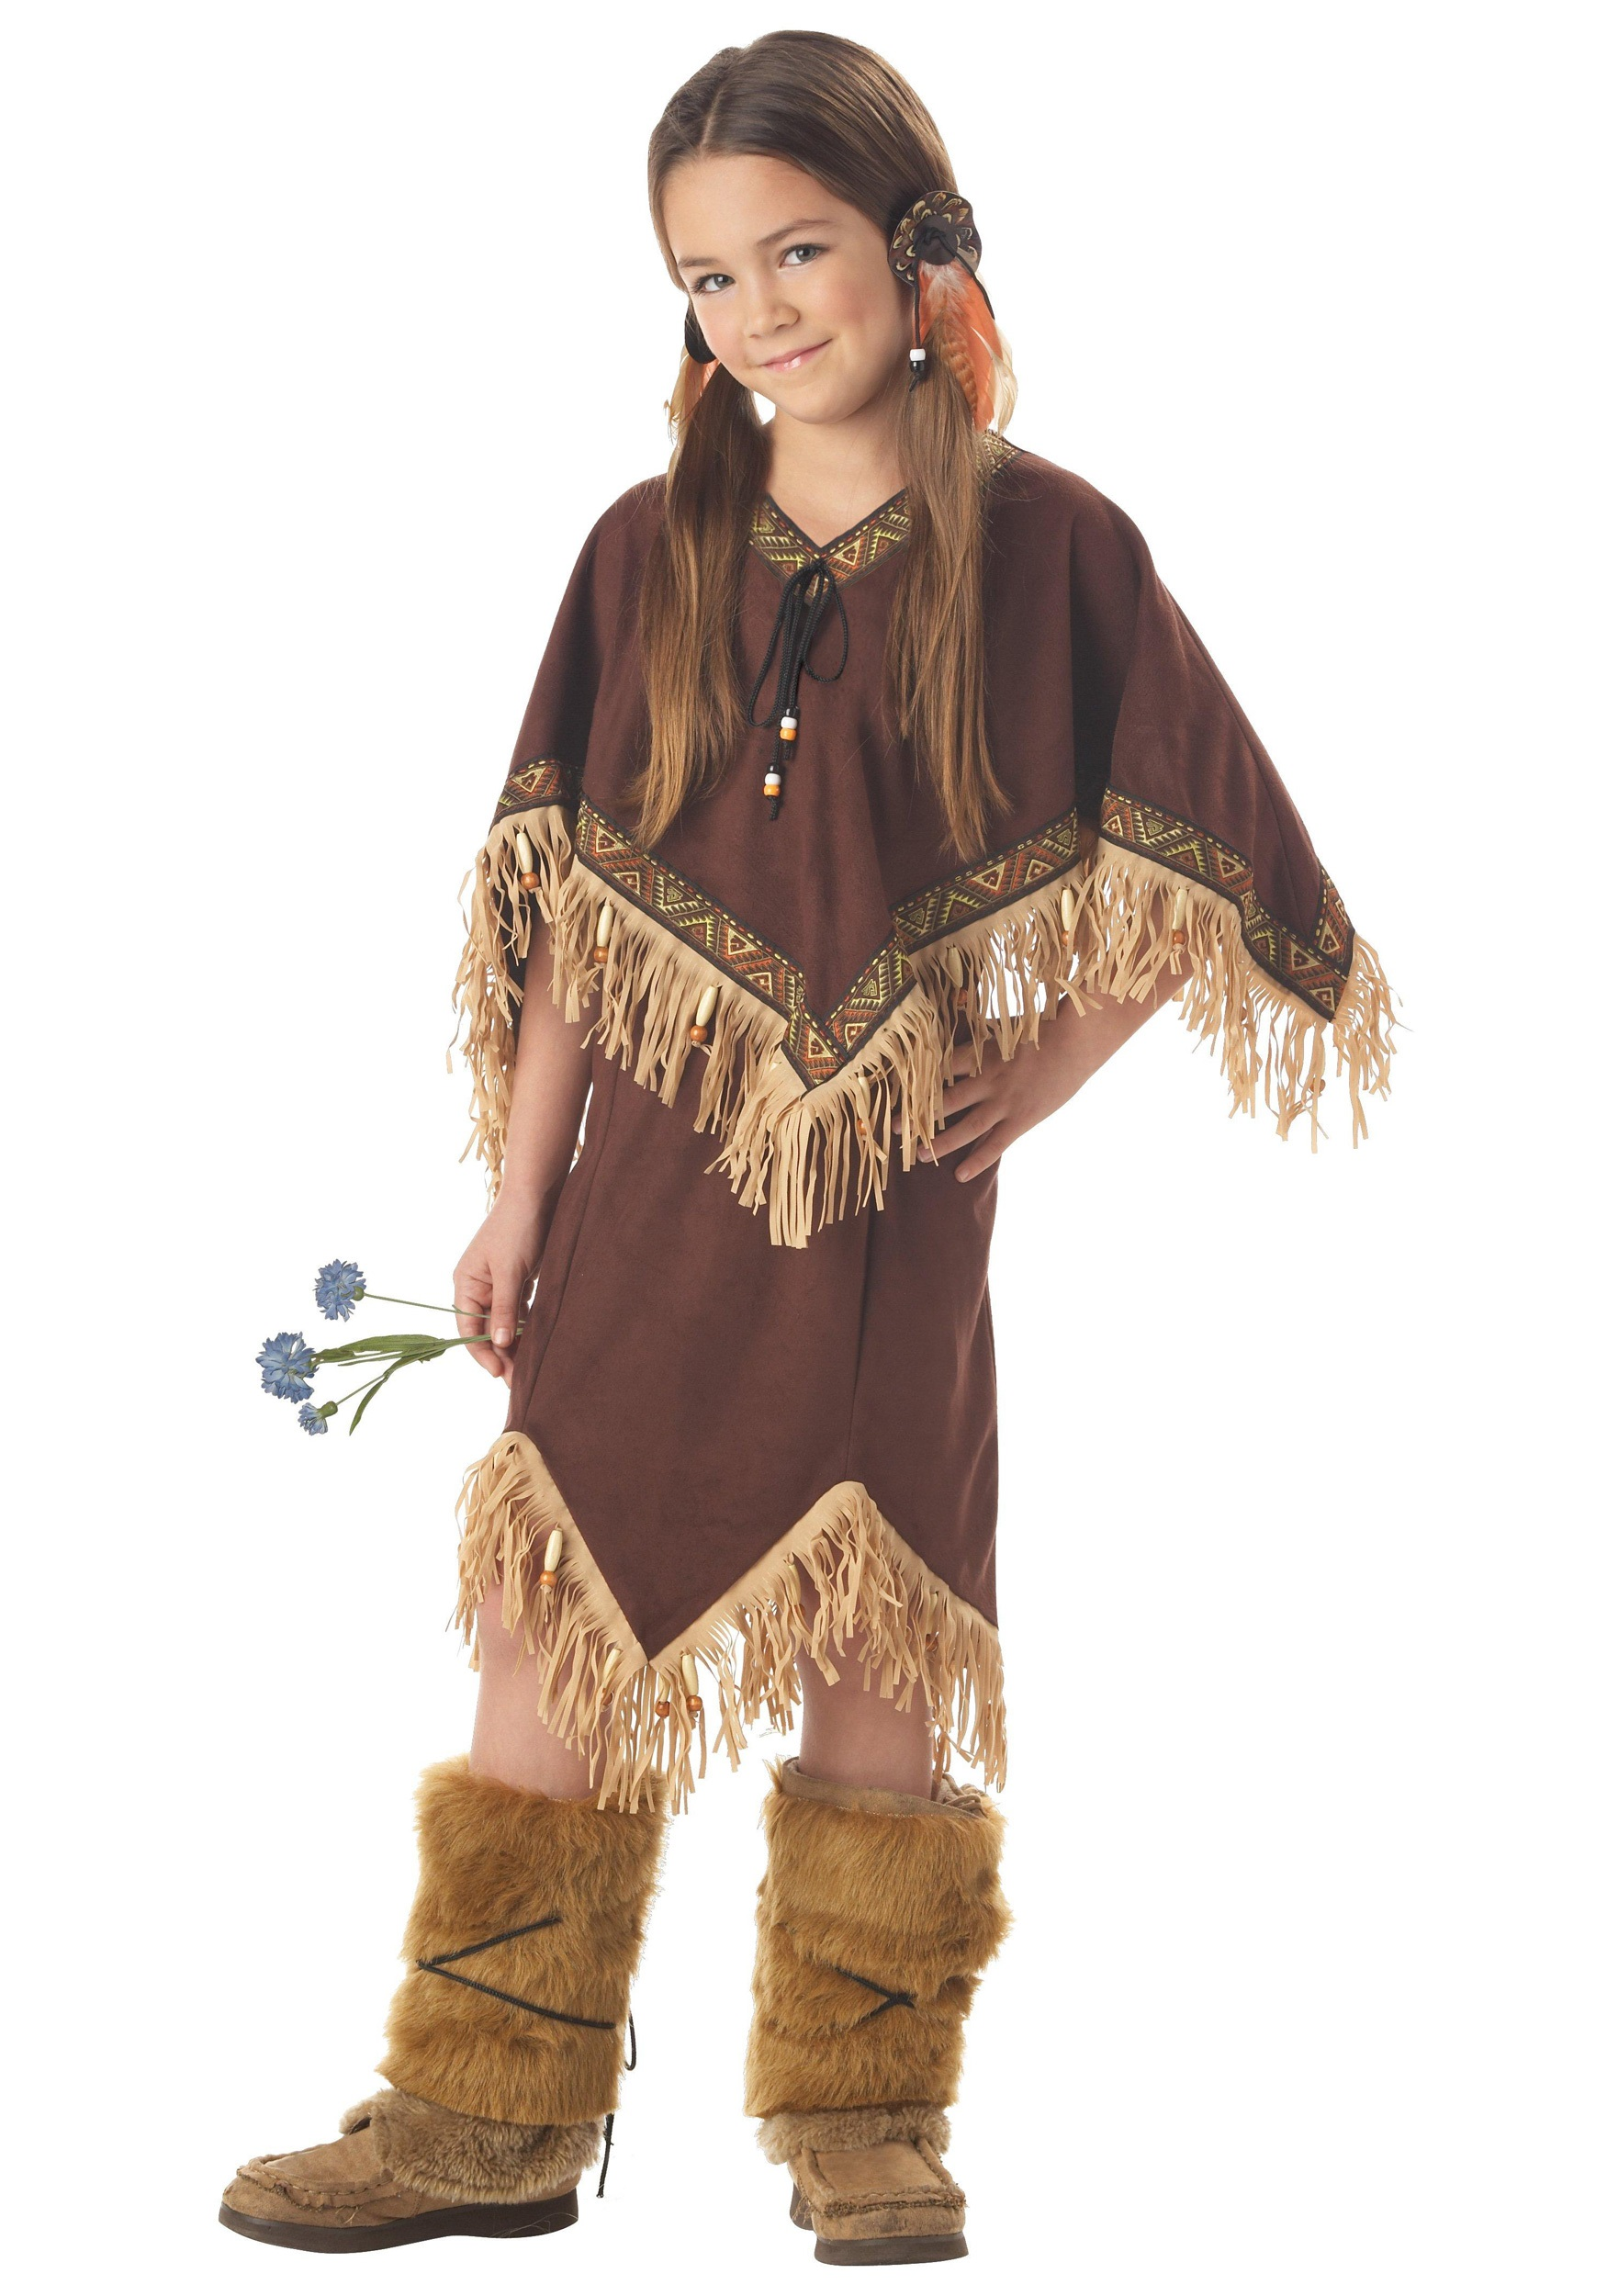 Gallery For gt Traditional Native American Clothing